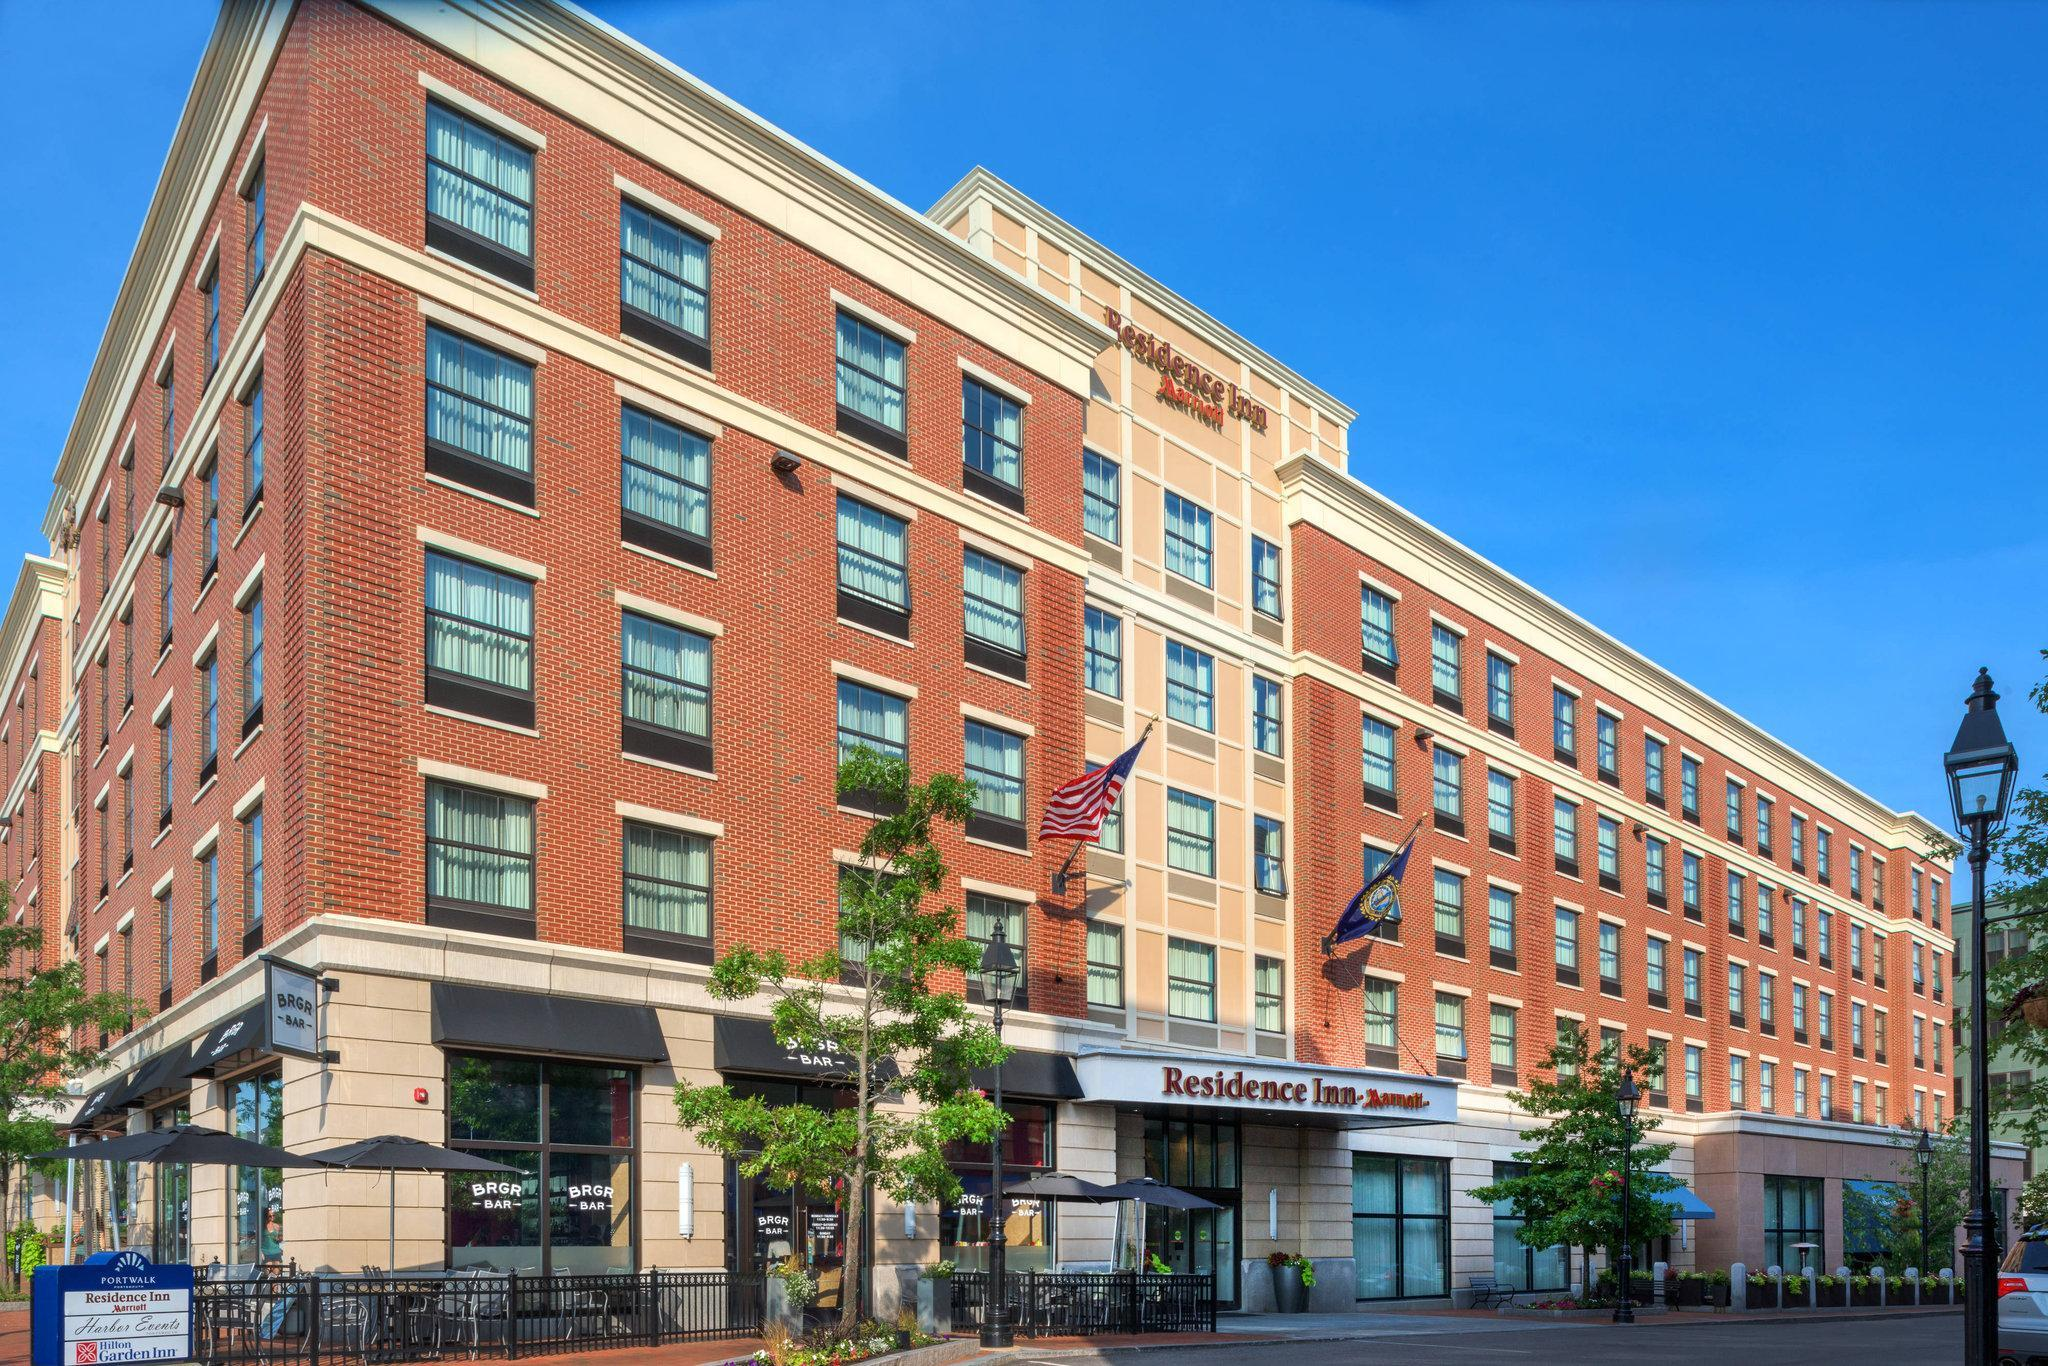 Residence Inn Portsmouth Downtown Waterfront